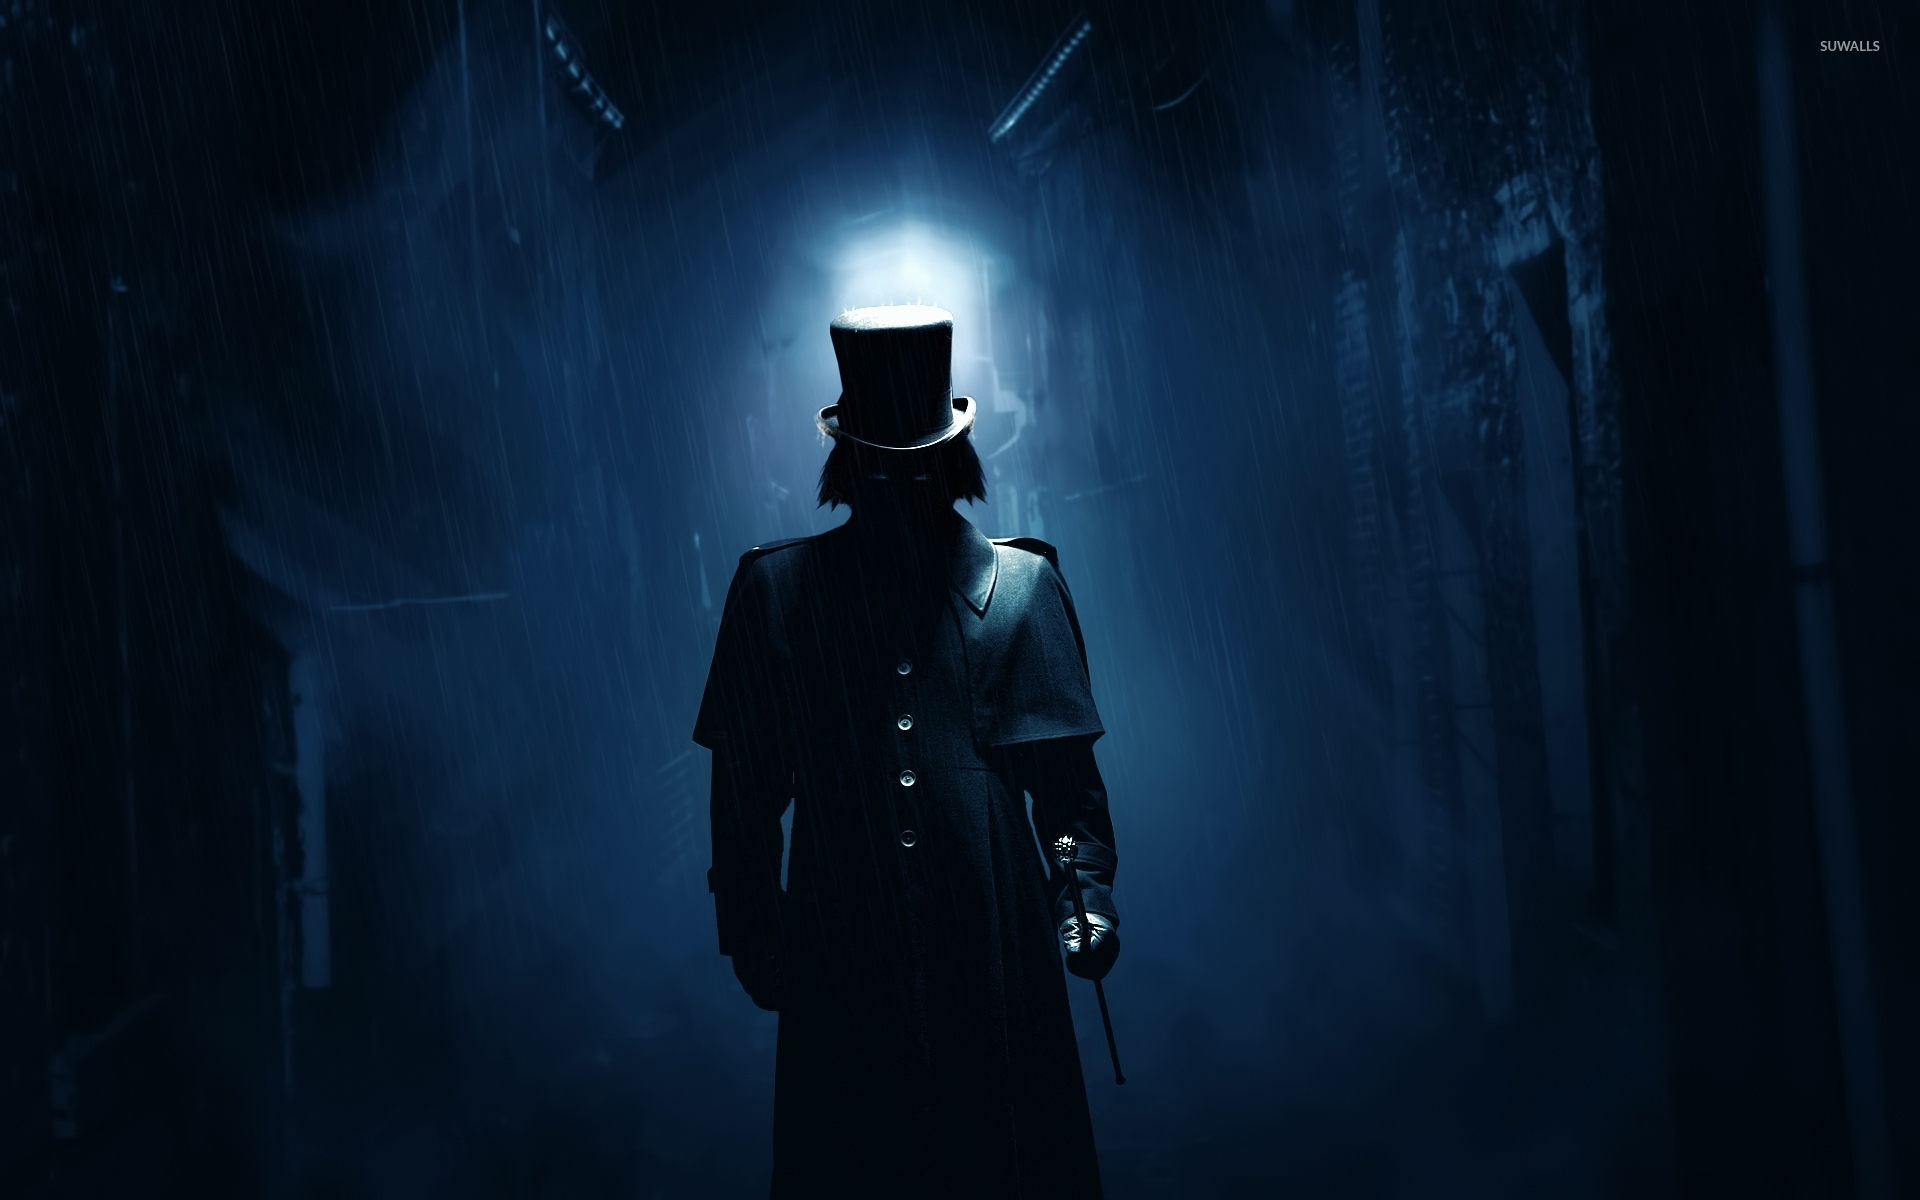 jack-the-ripper-on-a-dark-london-street-48876-1920x1200.jpg